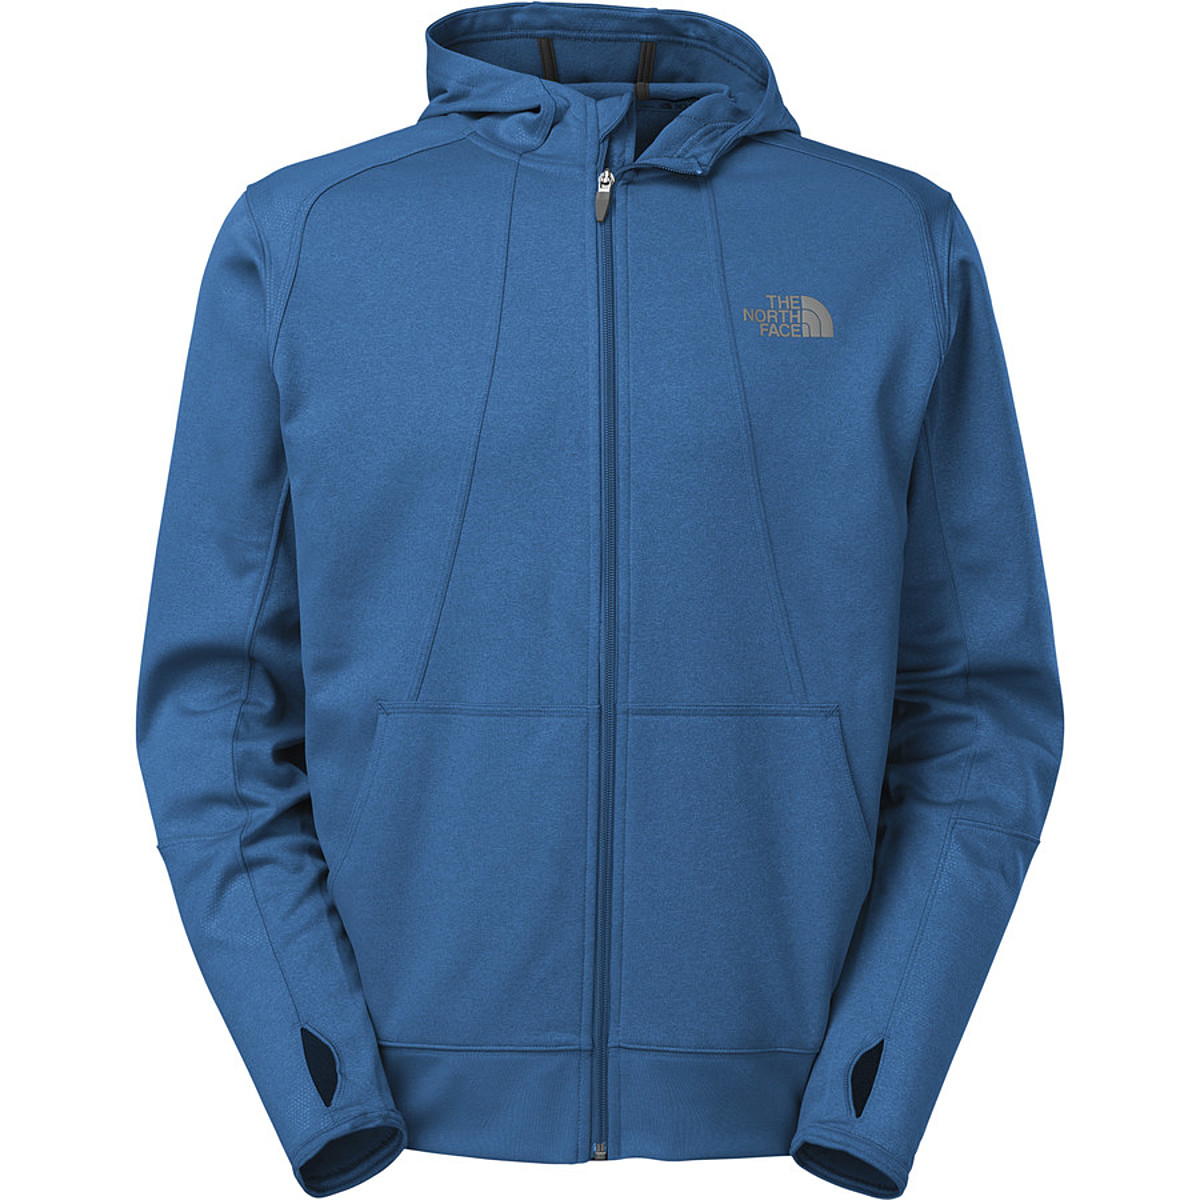 The North Face Quantum Full Zip Hoodie